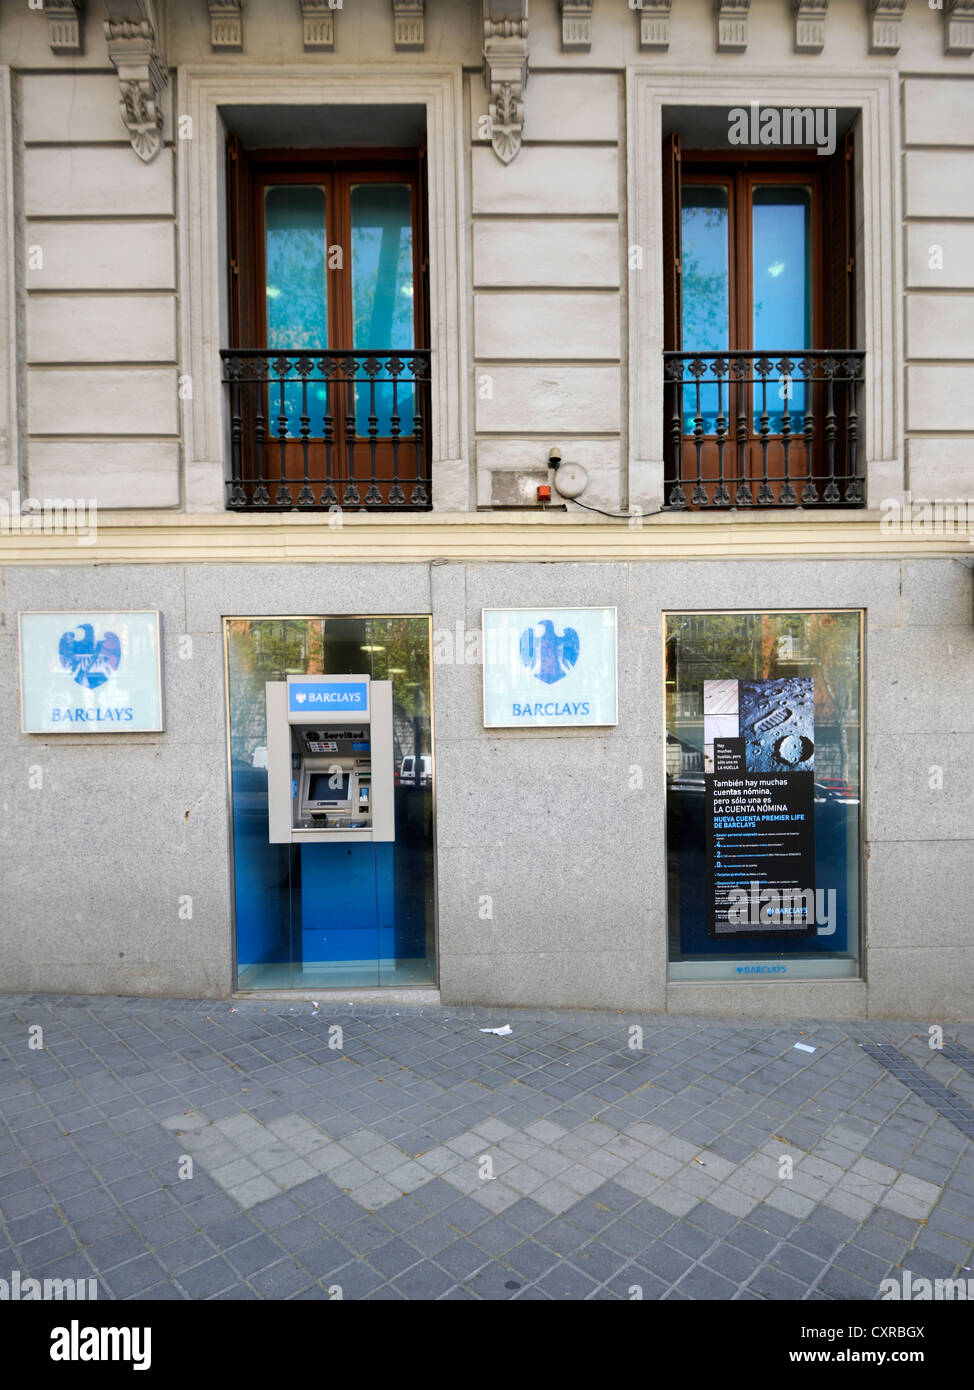 Branch of Barclays Bank, Madrid, Spain, Europe, PublicGround - Stock Image